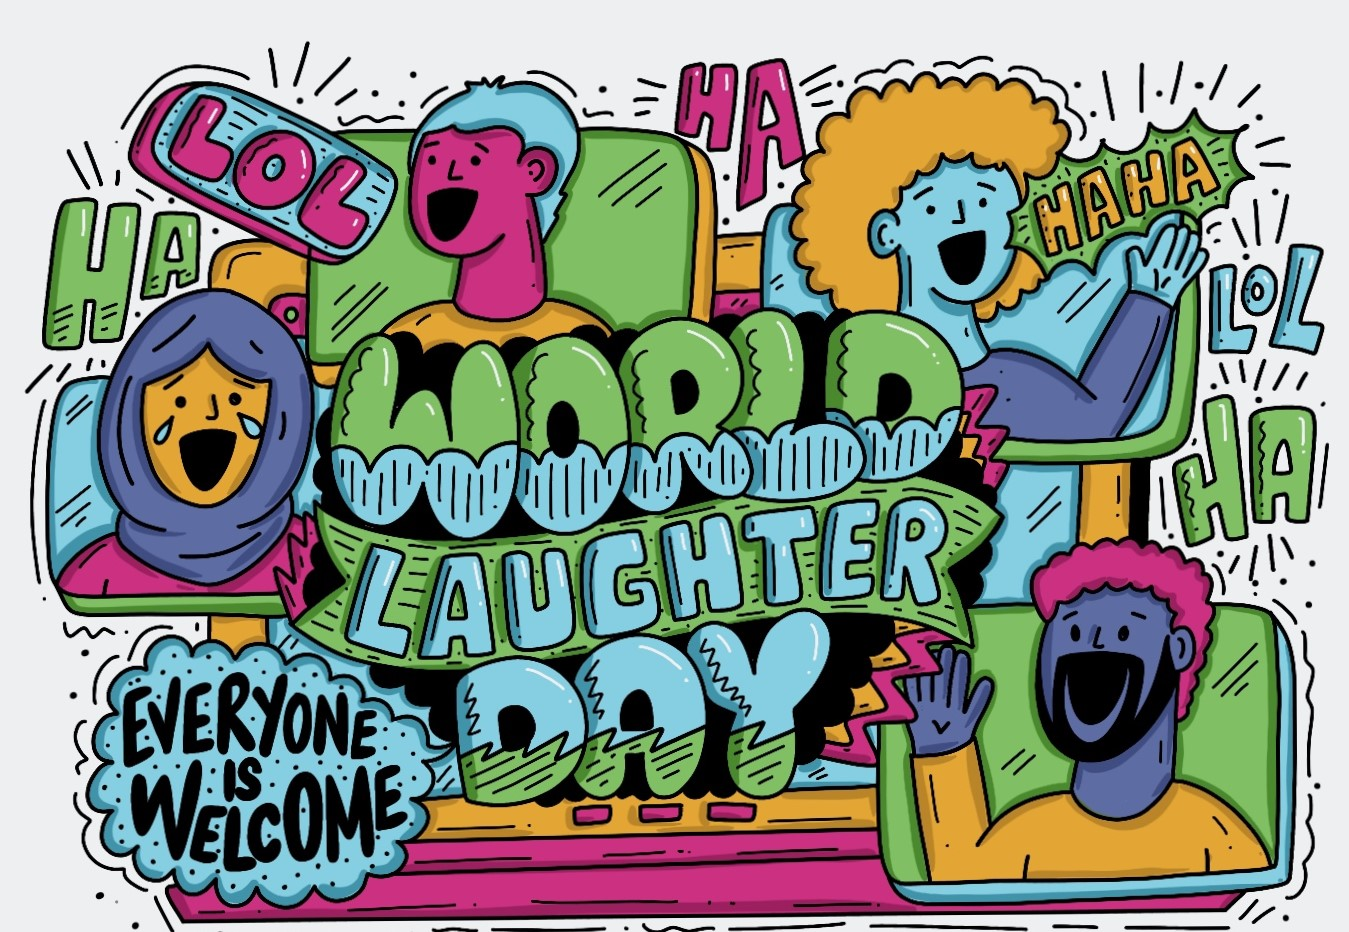 LAUGHTER IS GOOD MEDICINE   World Laughter Day 2021